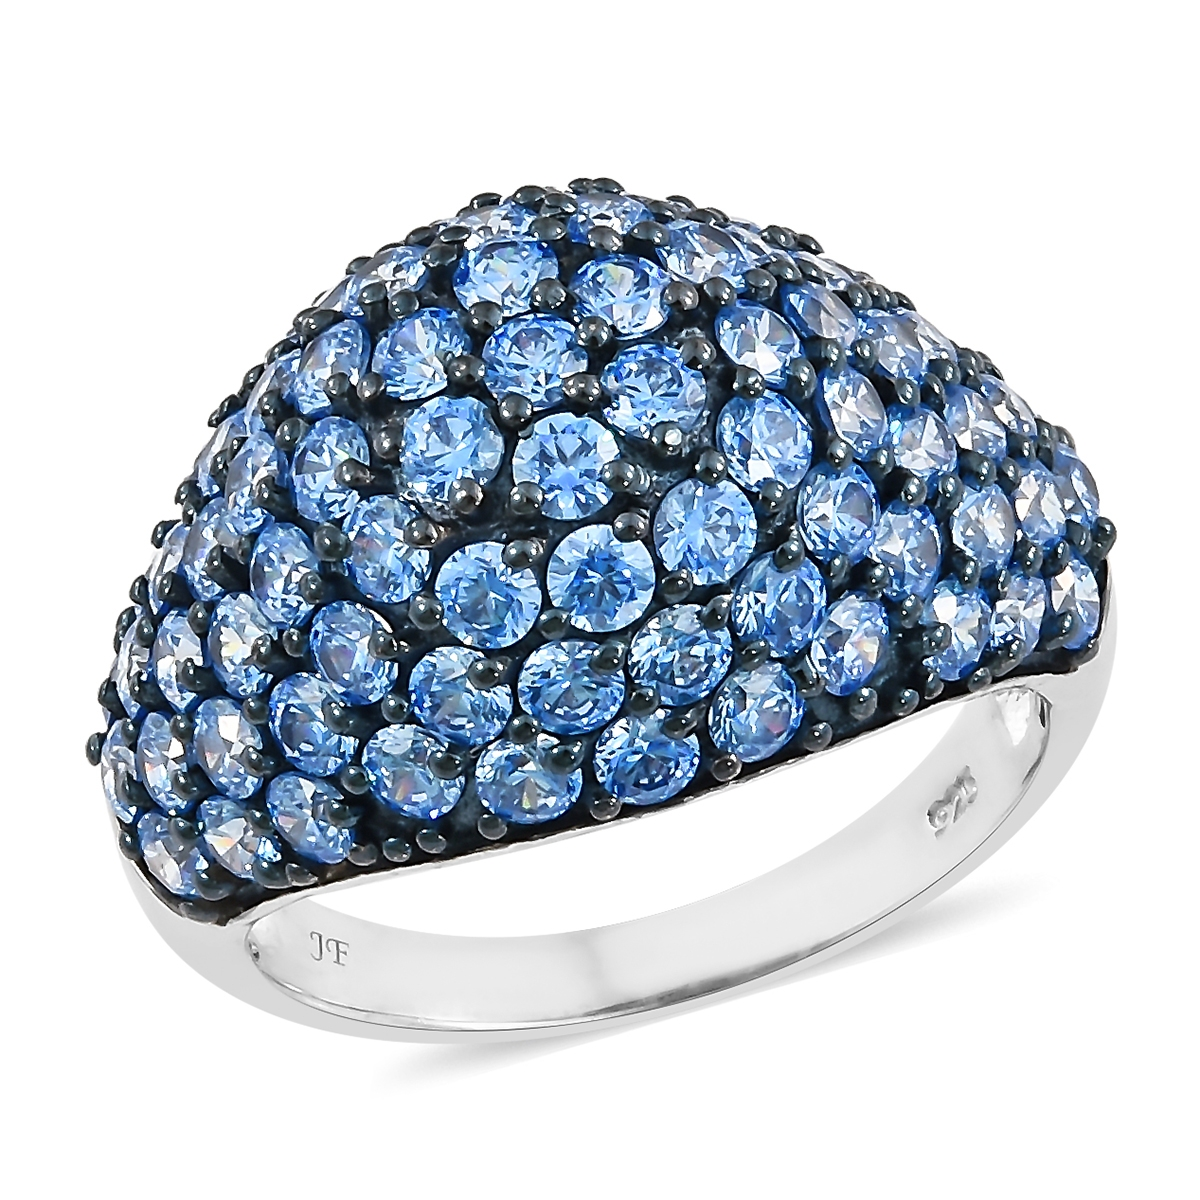 de9b5033c J Francis - Platinum Over Sterling Silver Cluster Ring Made with Arctic  Blue SWAROVSKI ZIRCONIA (Size 7.0) TGW 9.10 cts. | Shop LC